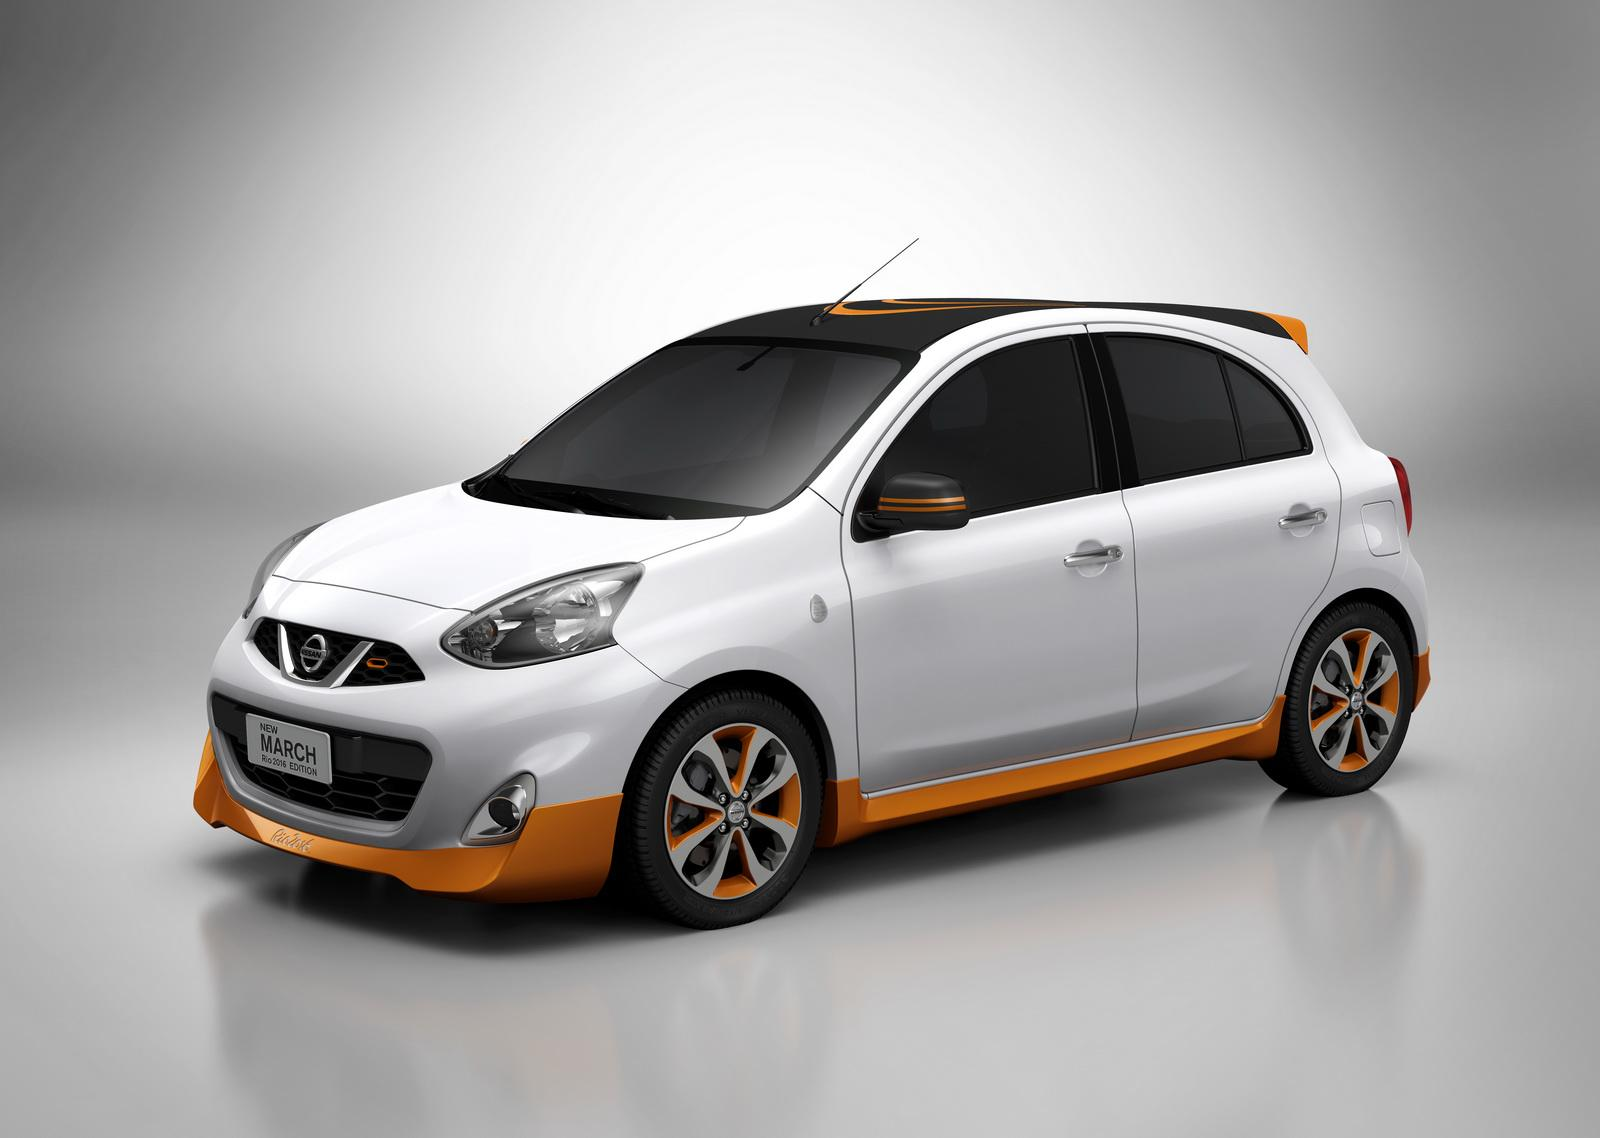 Nissan March Rio 2016 Edition Is a Micra with a Gold Body ...